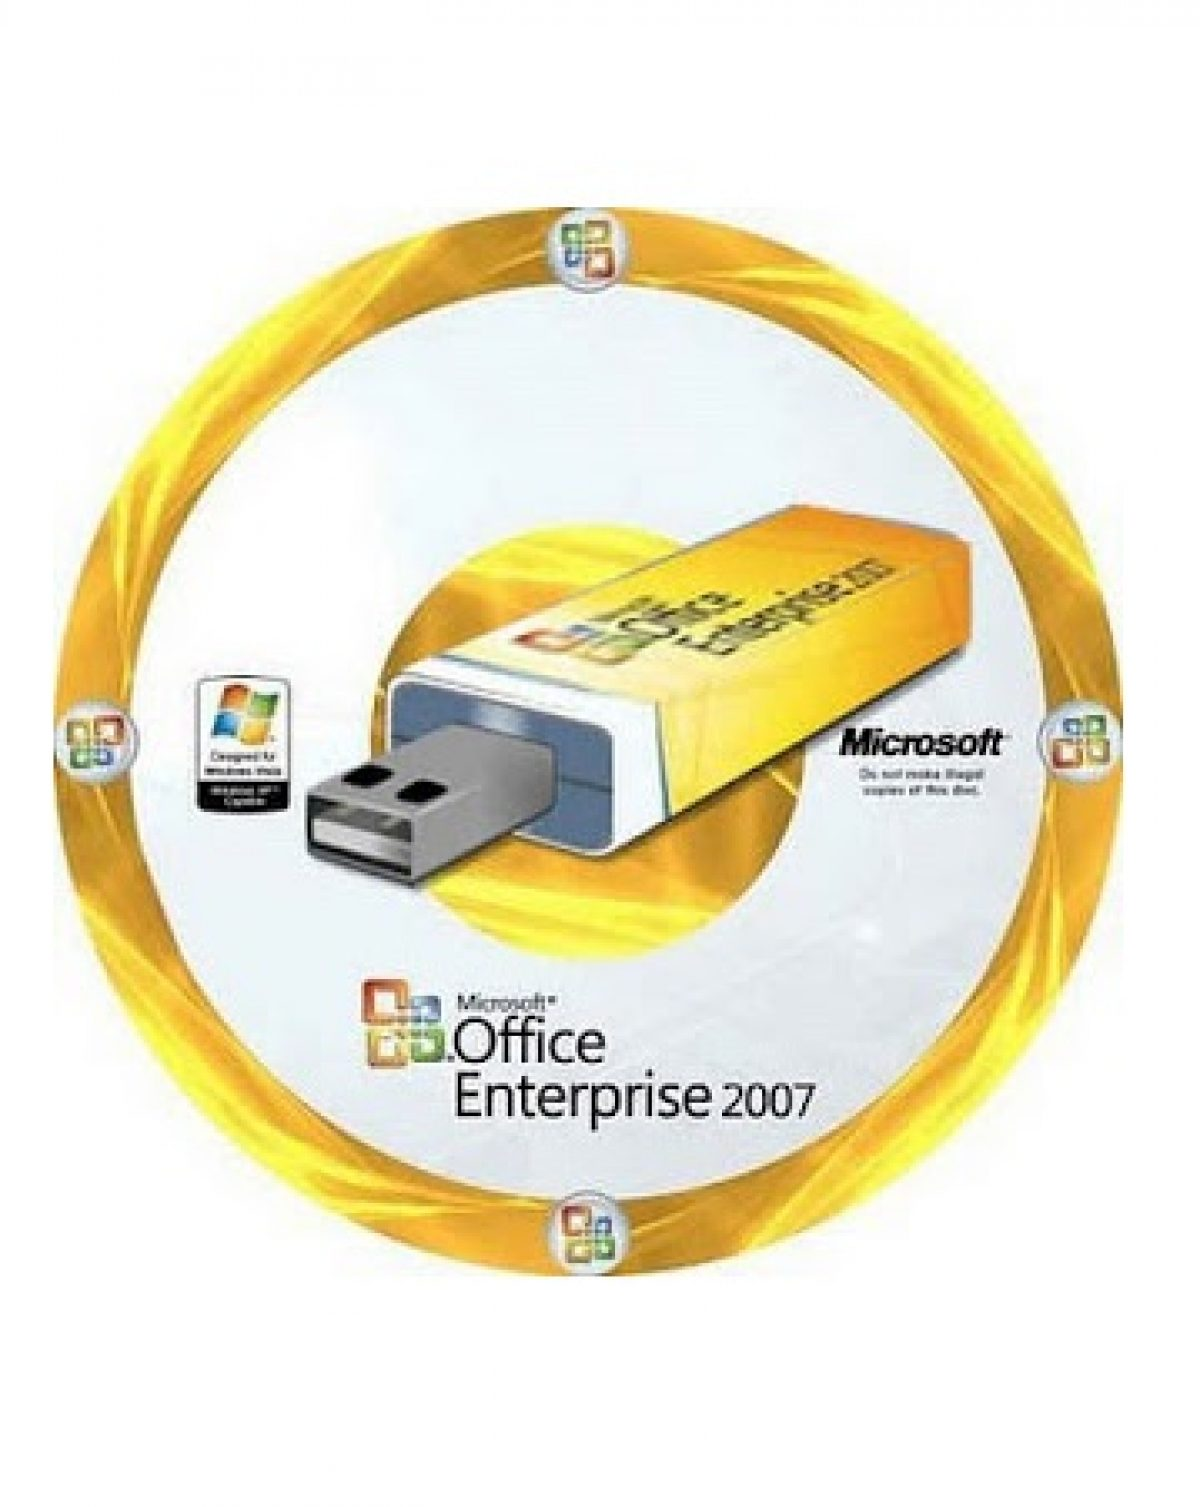 Portable microsoft 2007 word and excel free download waves all.